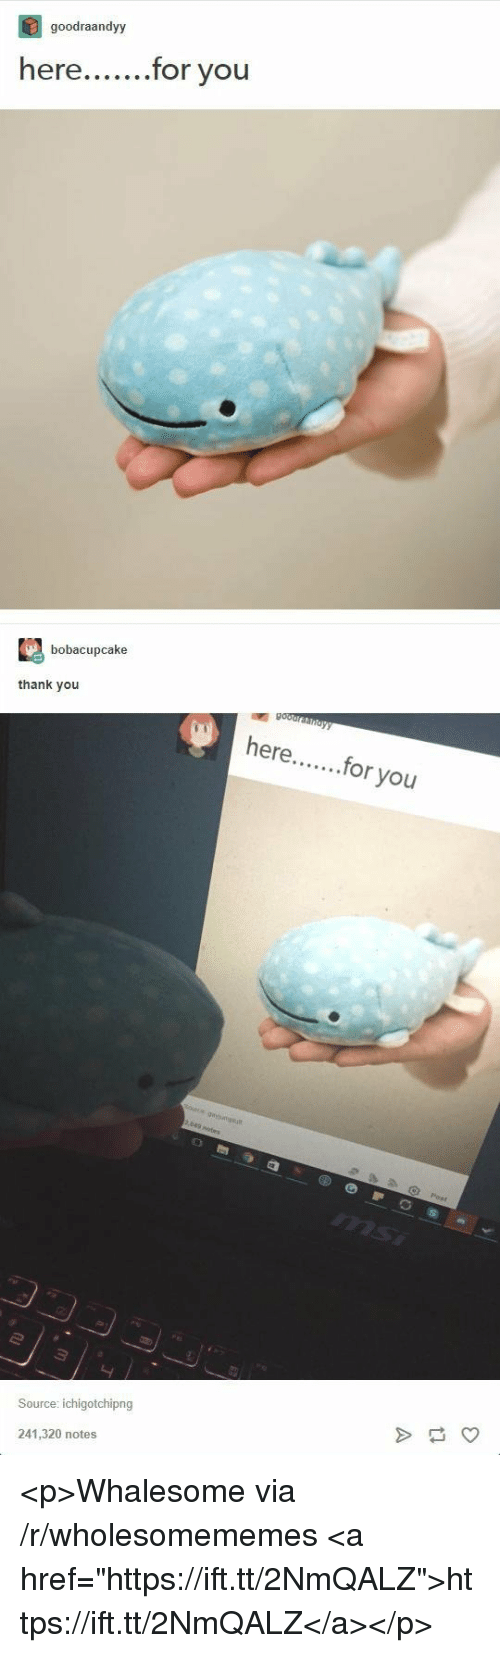 """Thank You, Source, and Via: goodraandyy  r you  bobacupcake  thank you  here...or you  Source: ichigotchipng  241,320 notes <p>Whalesome via /r/wholesomememes <a href=""""https://ift.tt/2NmQALZ"""">https://ift.tt/2NmQALZ</a></p>"""